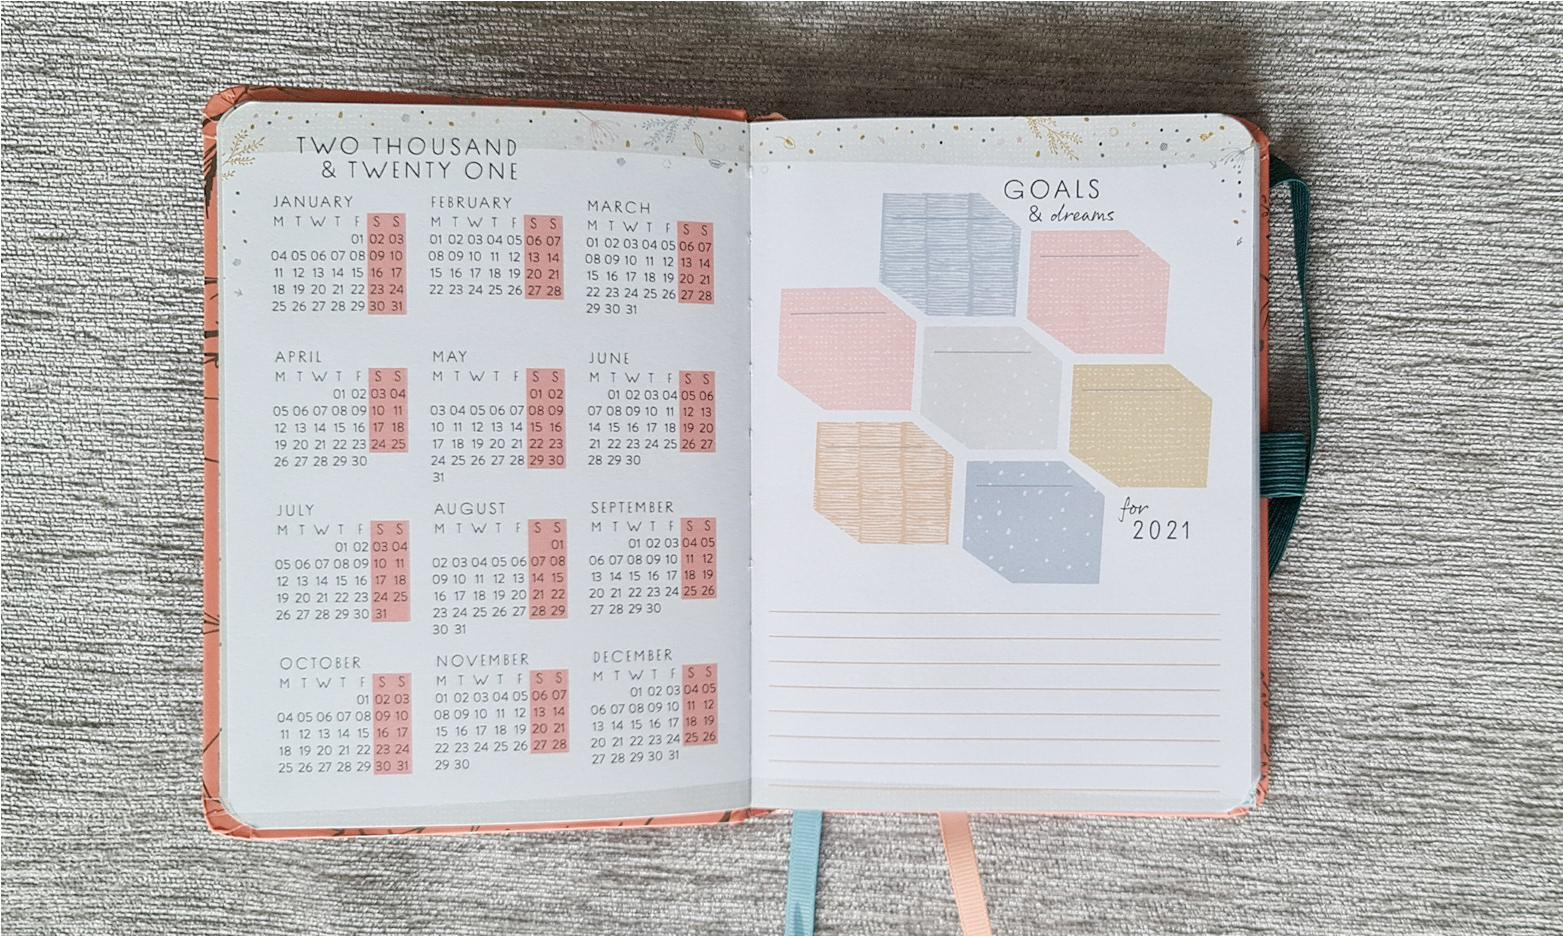 Box Clever Diary Goals